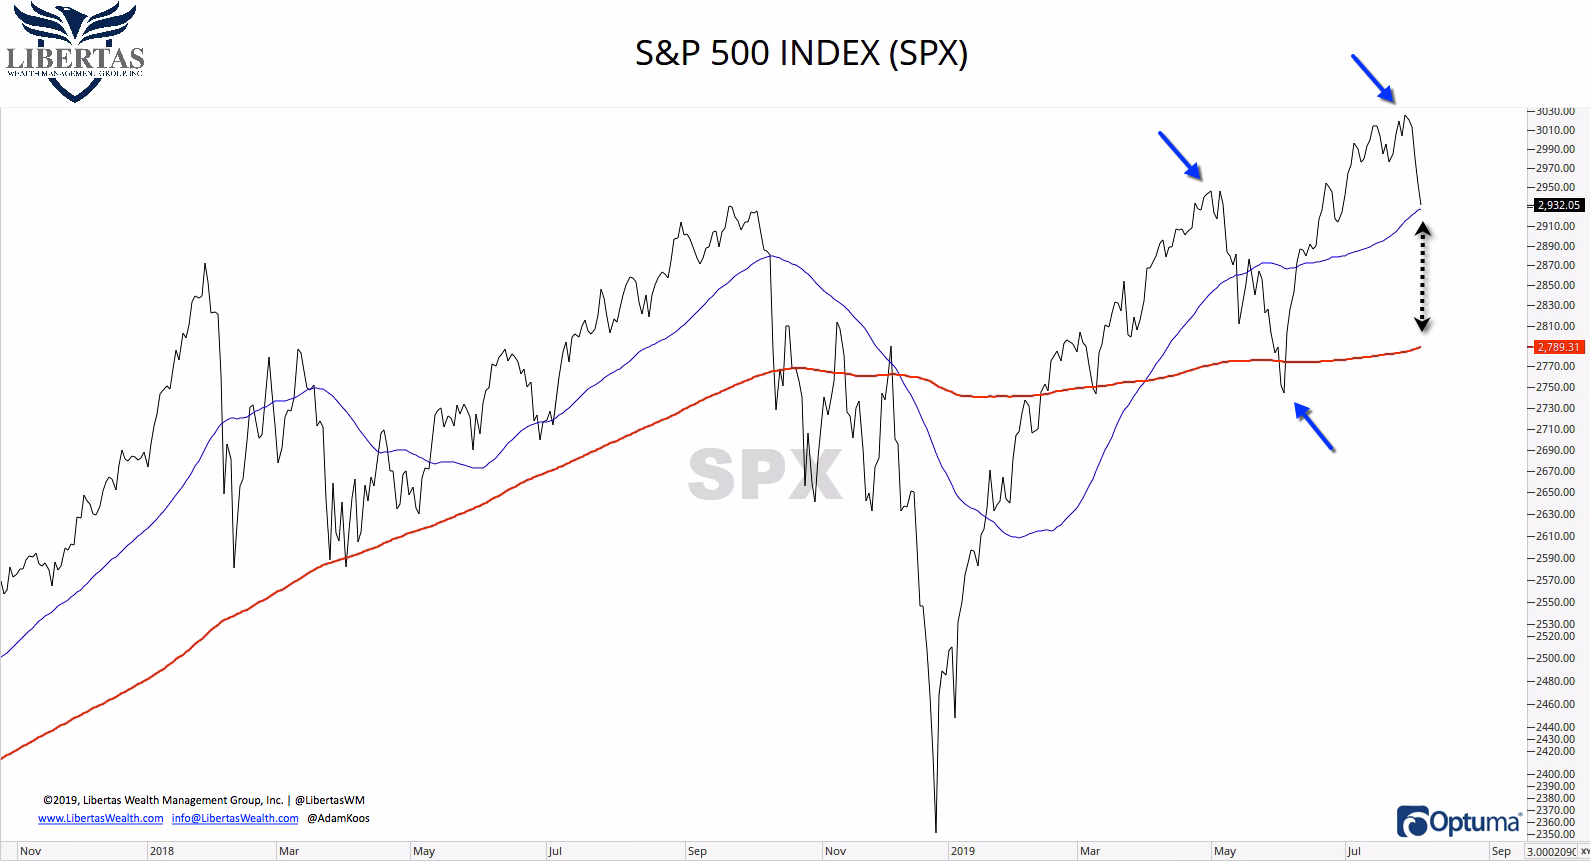 1-SPX-PRICE Trade War...Again?